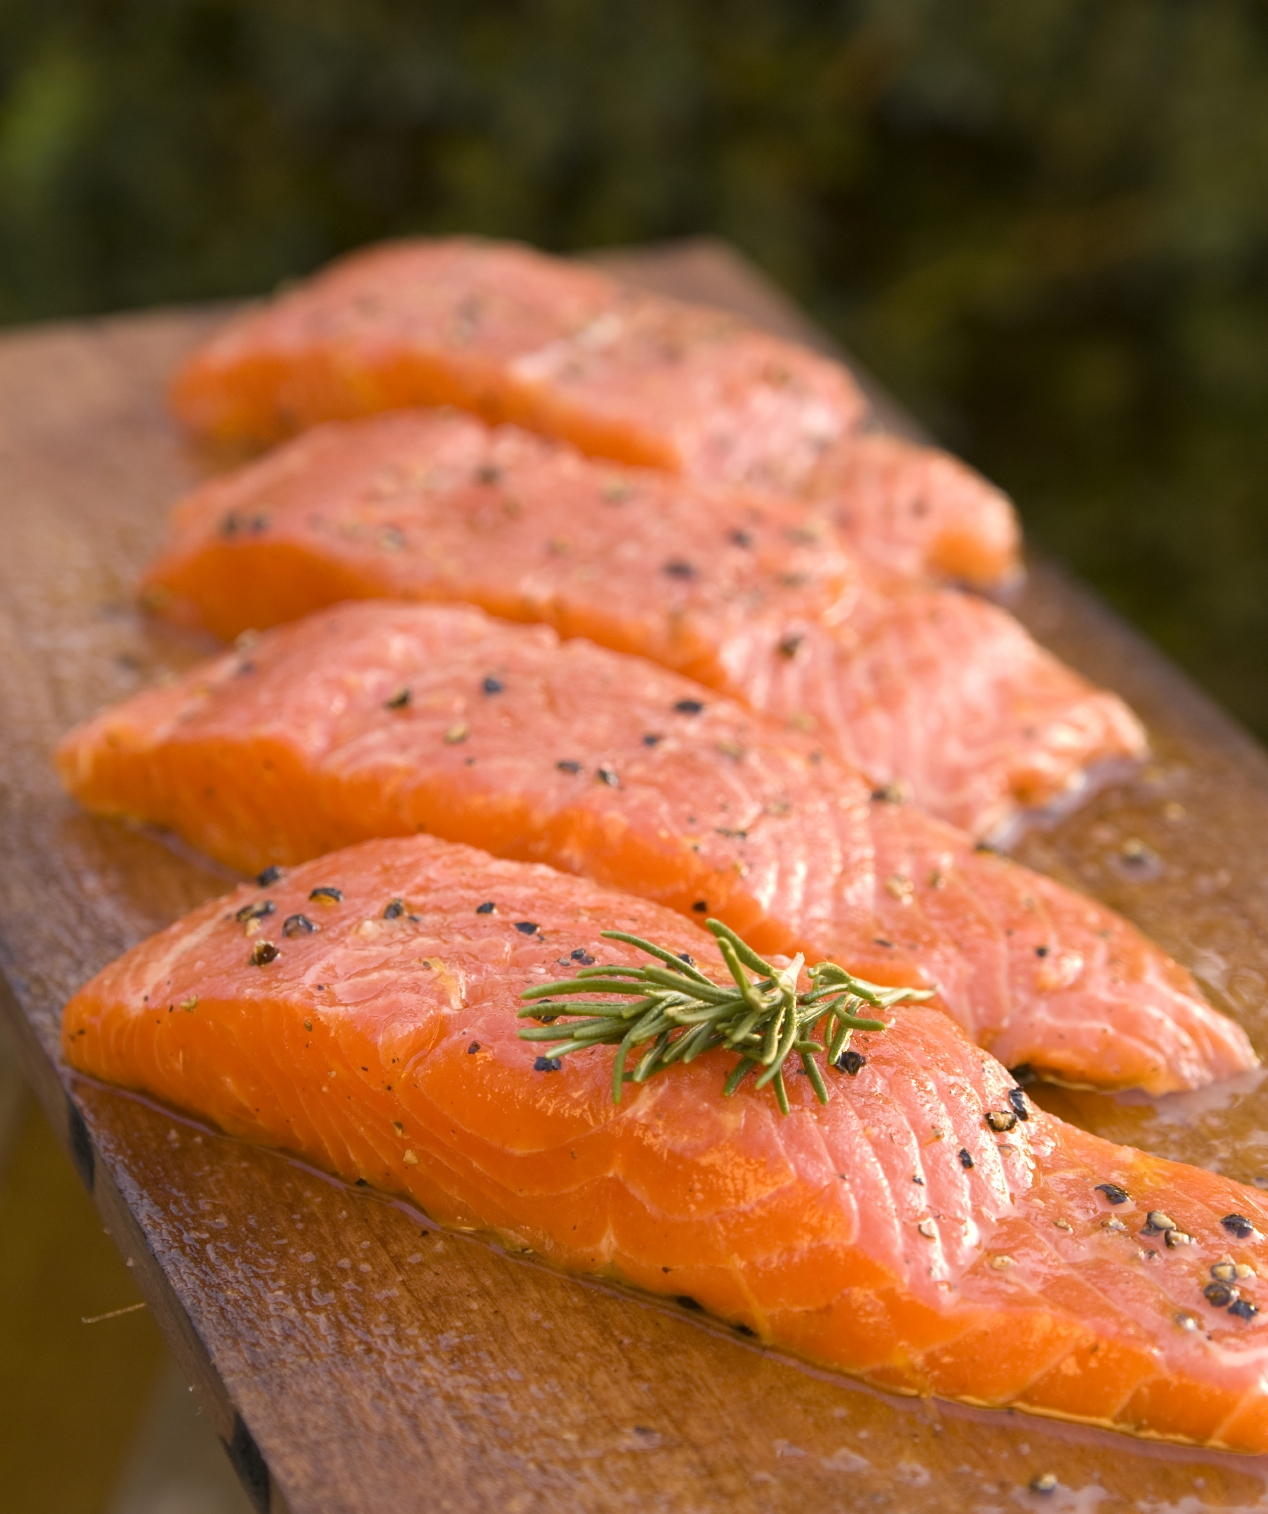 Top 5 foods for glowing skin the balanced blonde for Salmon fish pictures